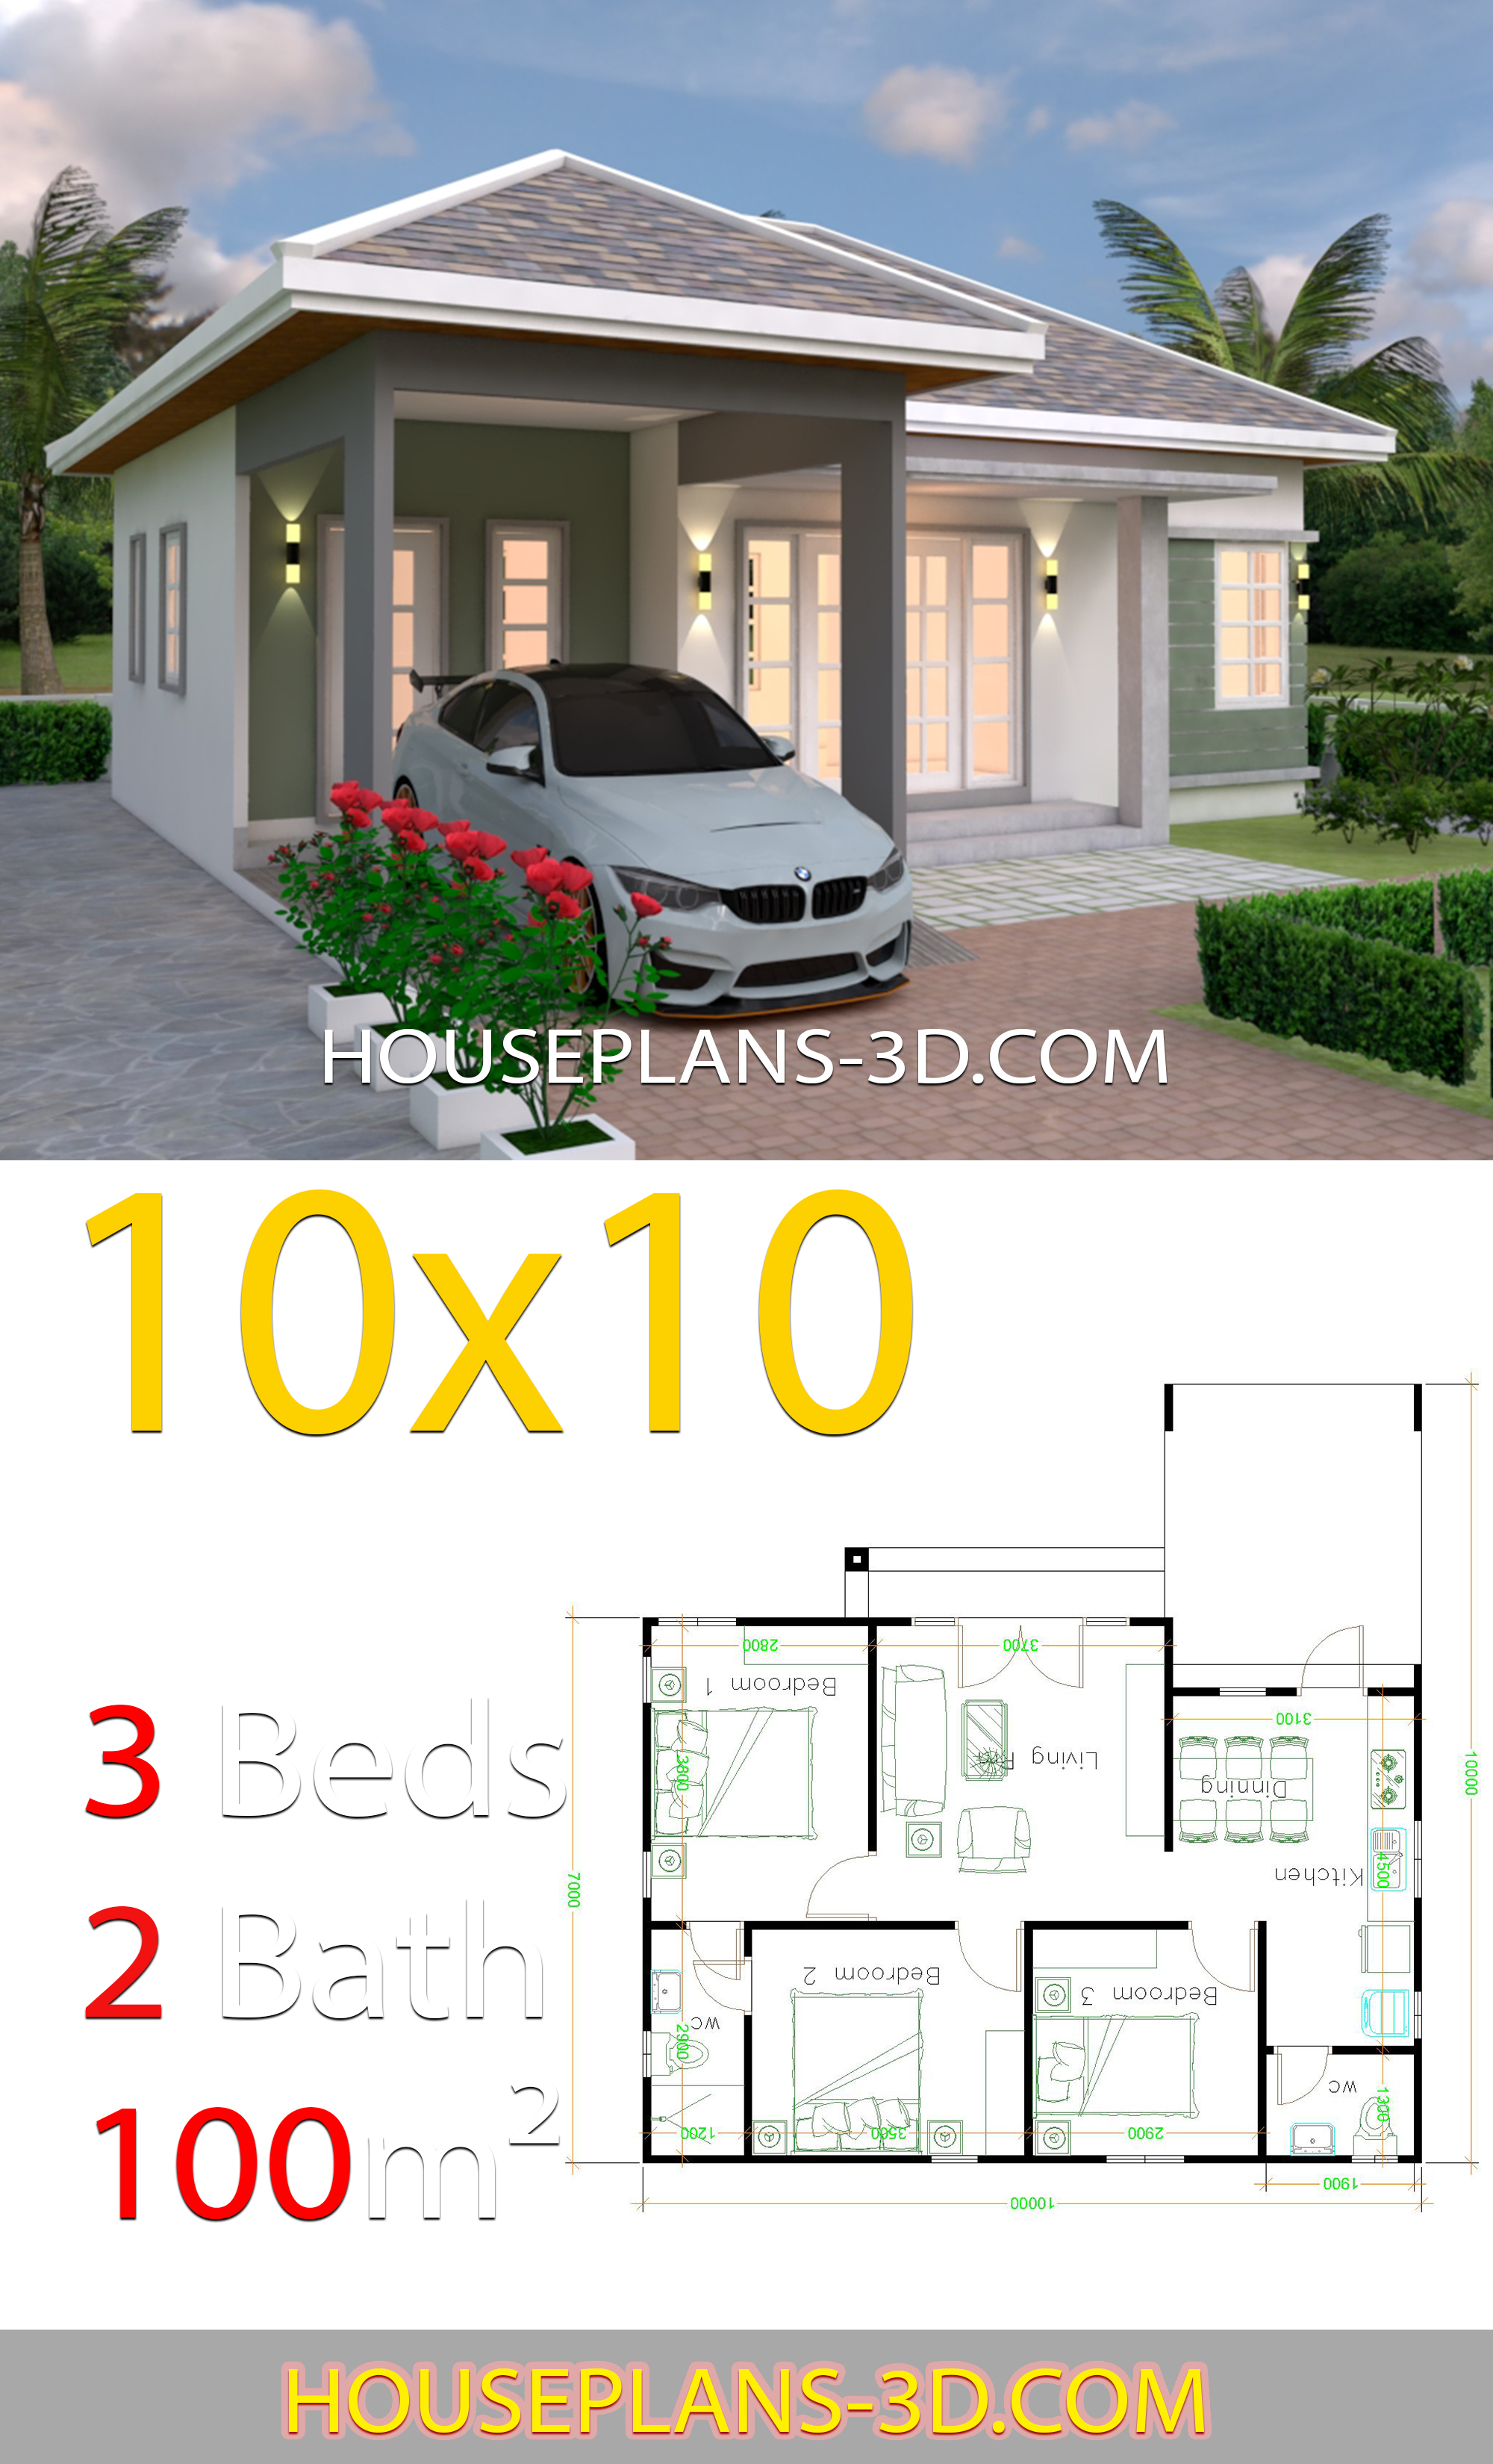 10x10 Bedroom Plans: Interior House Design Plans 10x10 With 3 Bedrooms Full